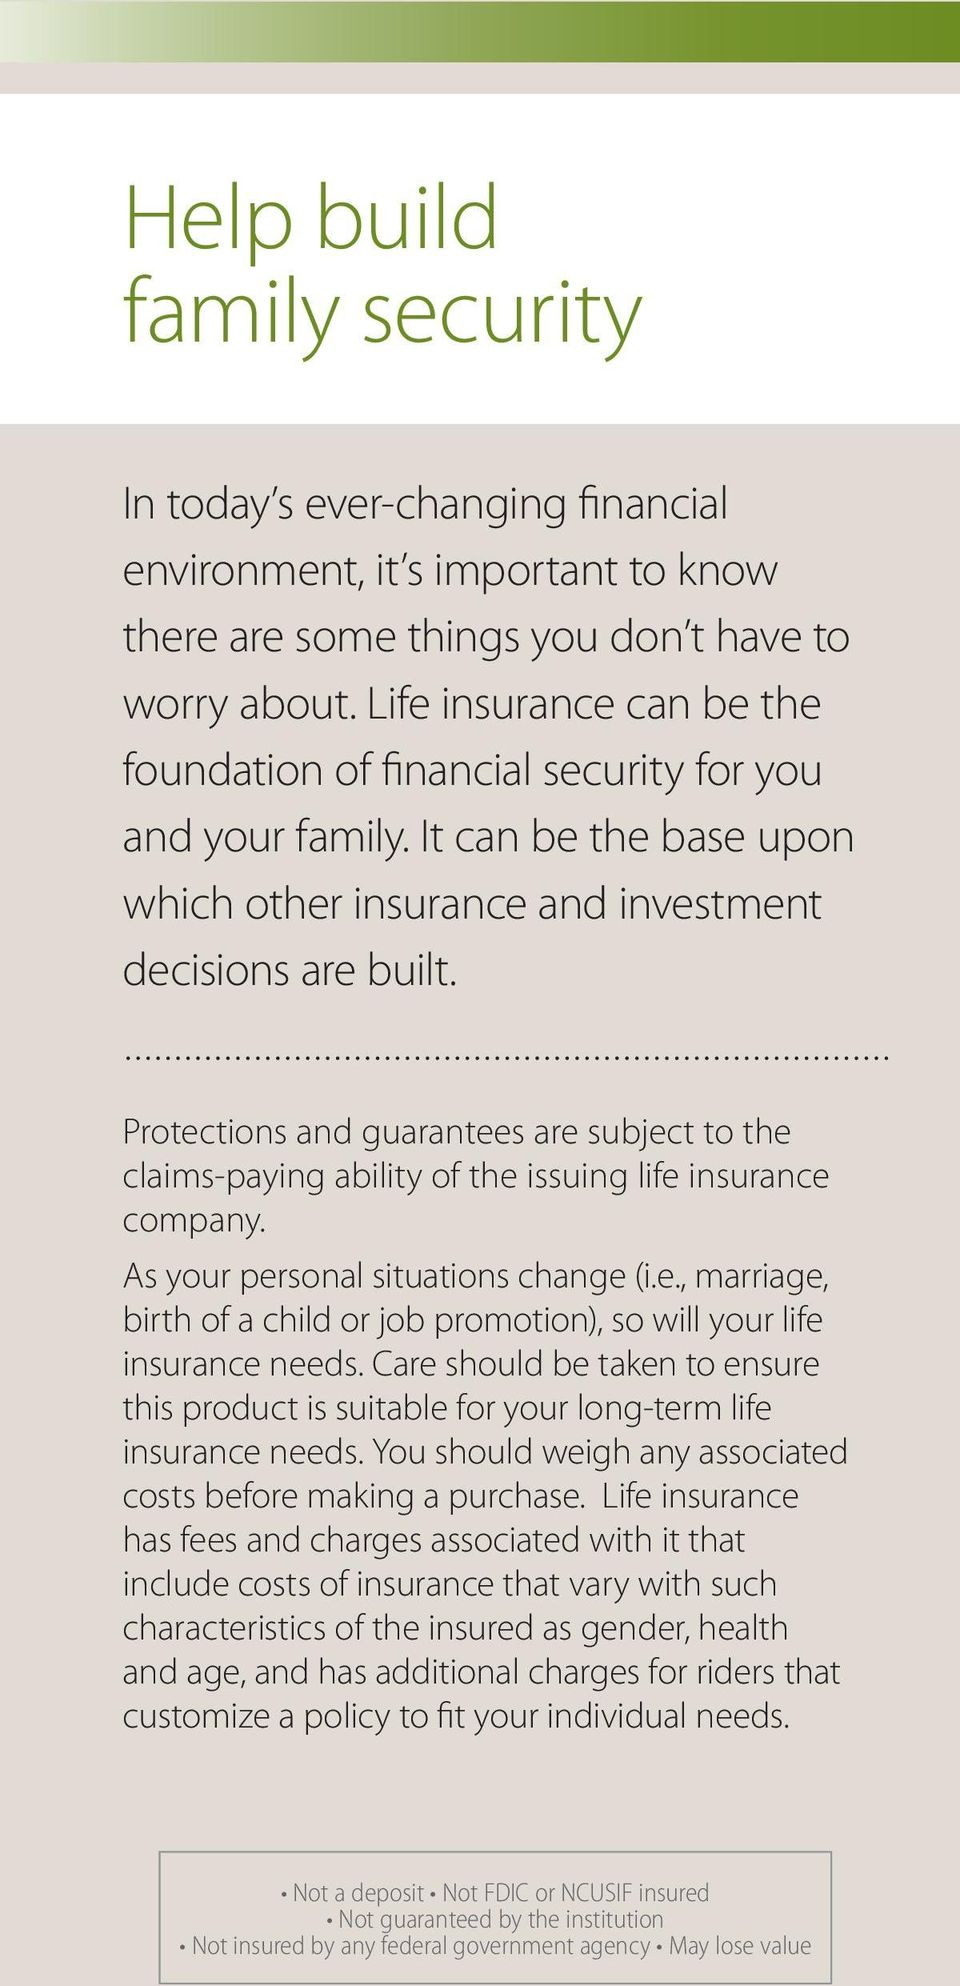 Protections and guarantees are subject to the claims-paying ability of the issuing life insurance company. As your personal situations change (i.e., marriage, birth of a child or job promotion), so will your life insurance needs.